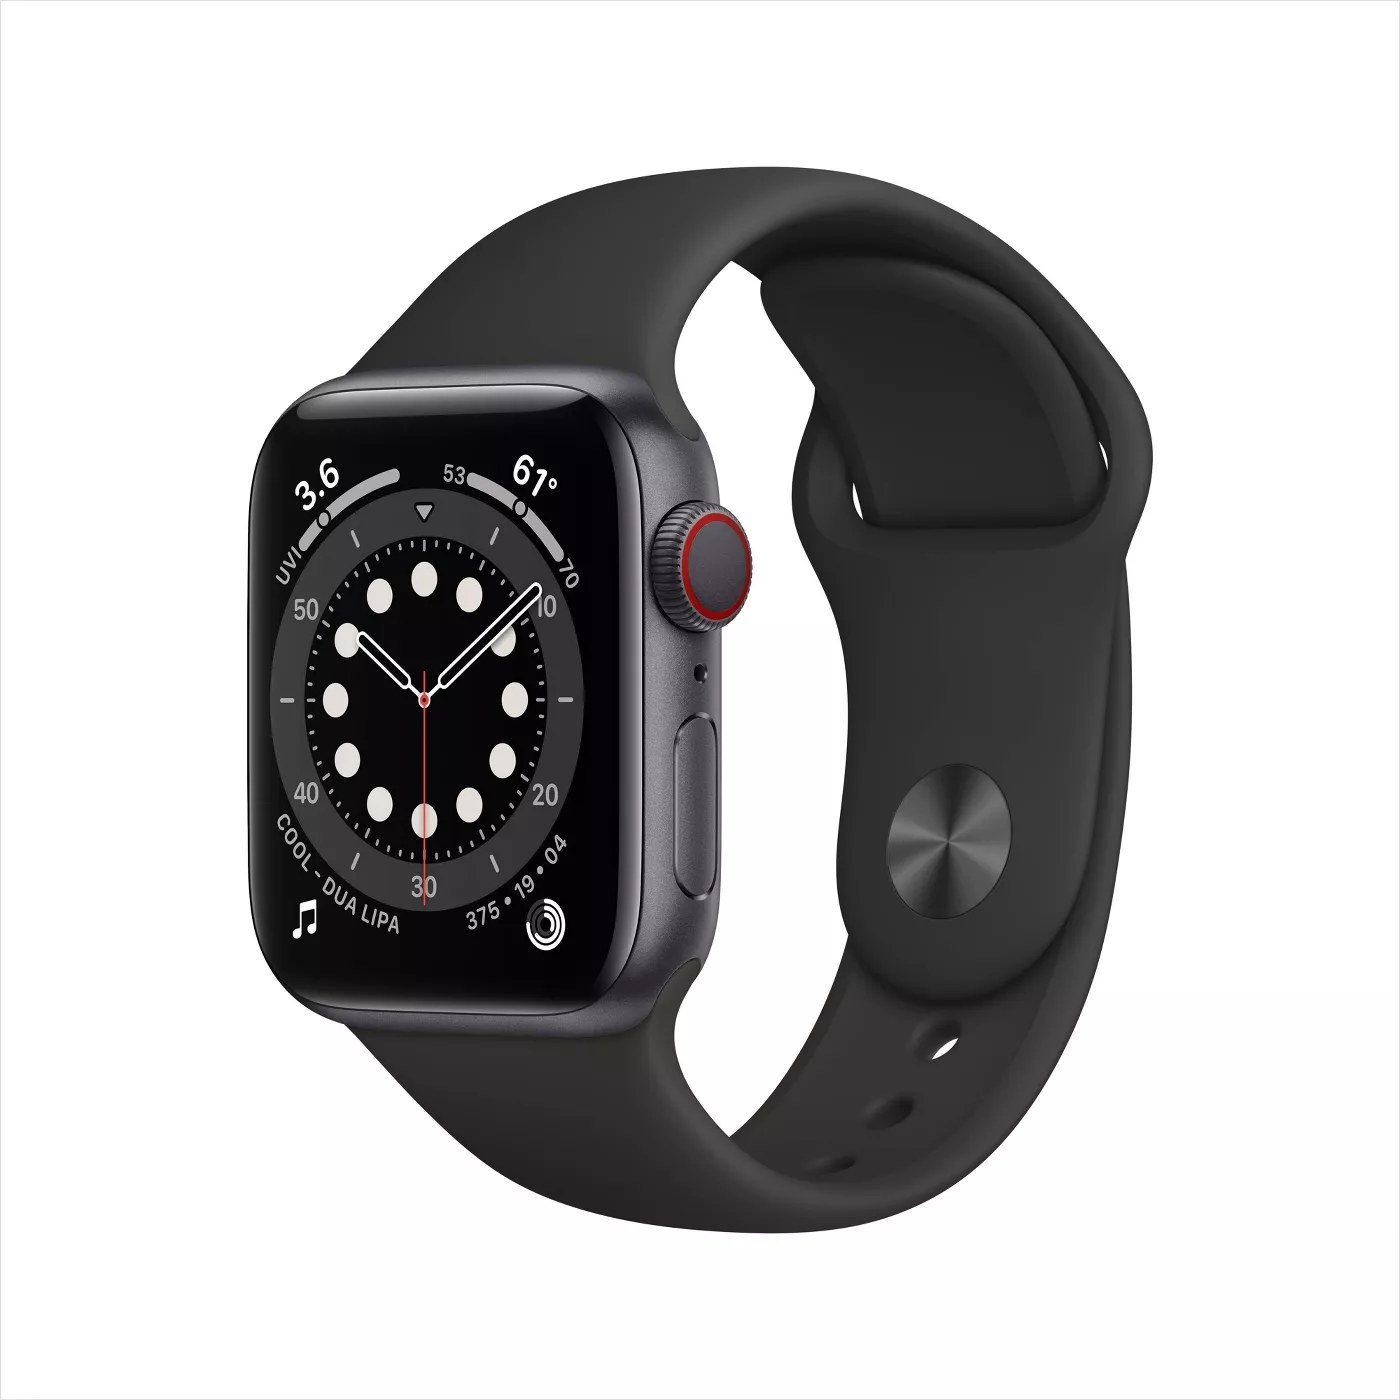 The Apple Watch in black showing a clock, the song playing, the Activity tracker, the weather, and the UVI